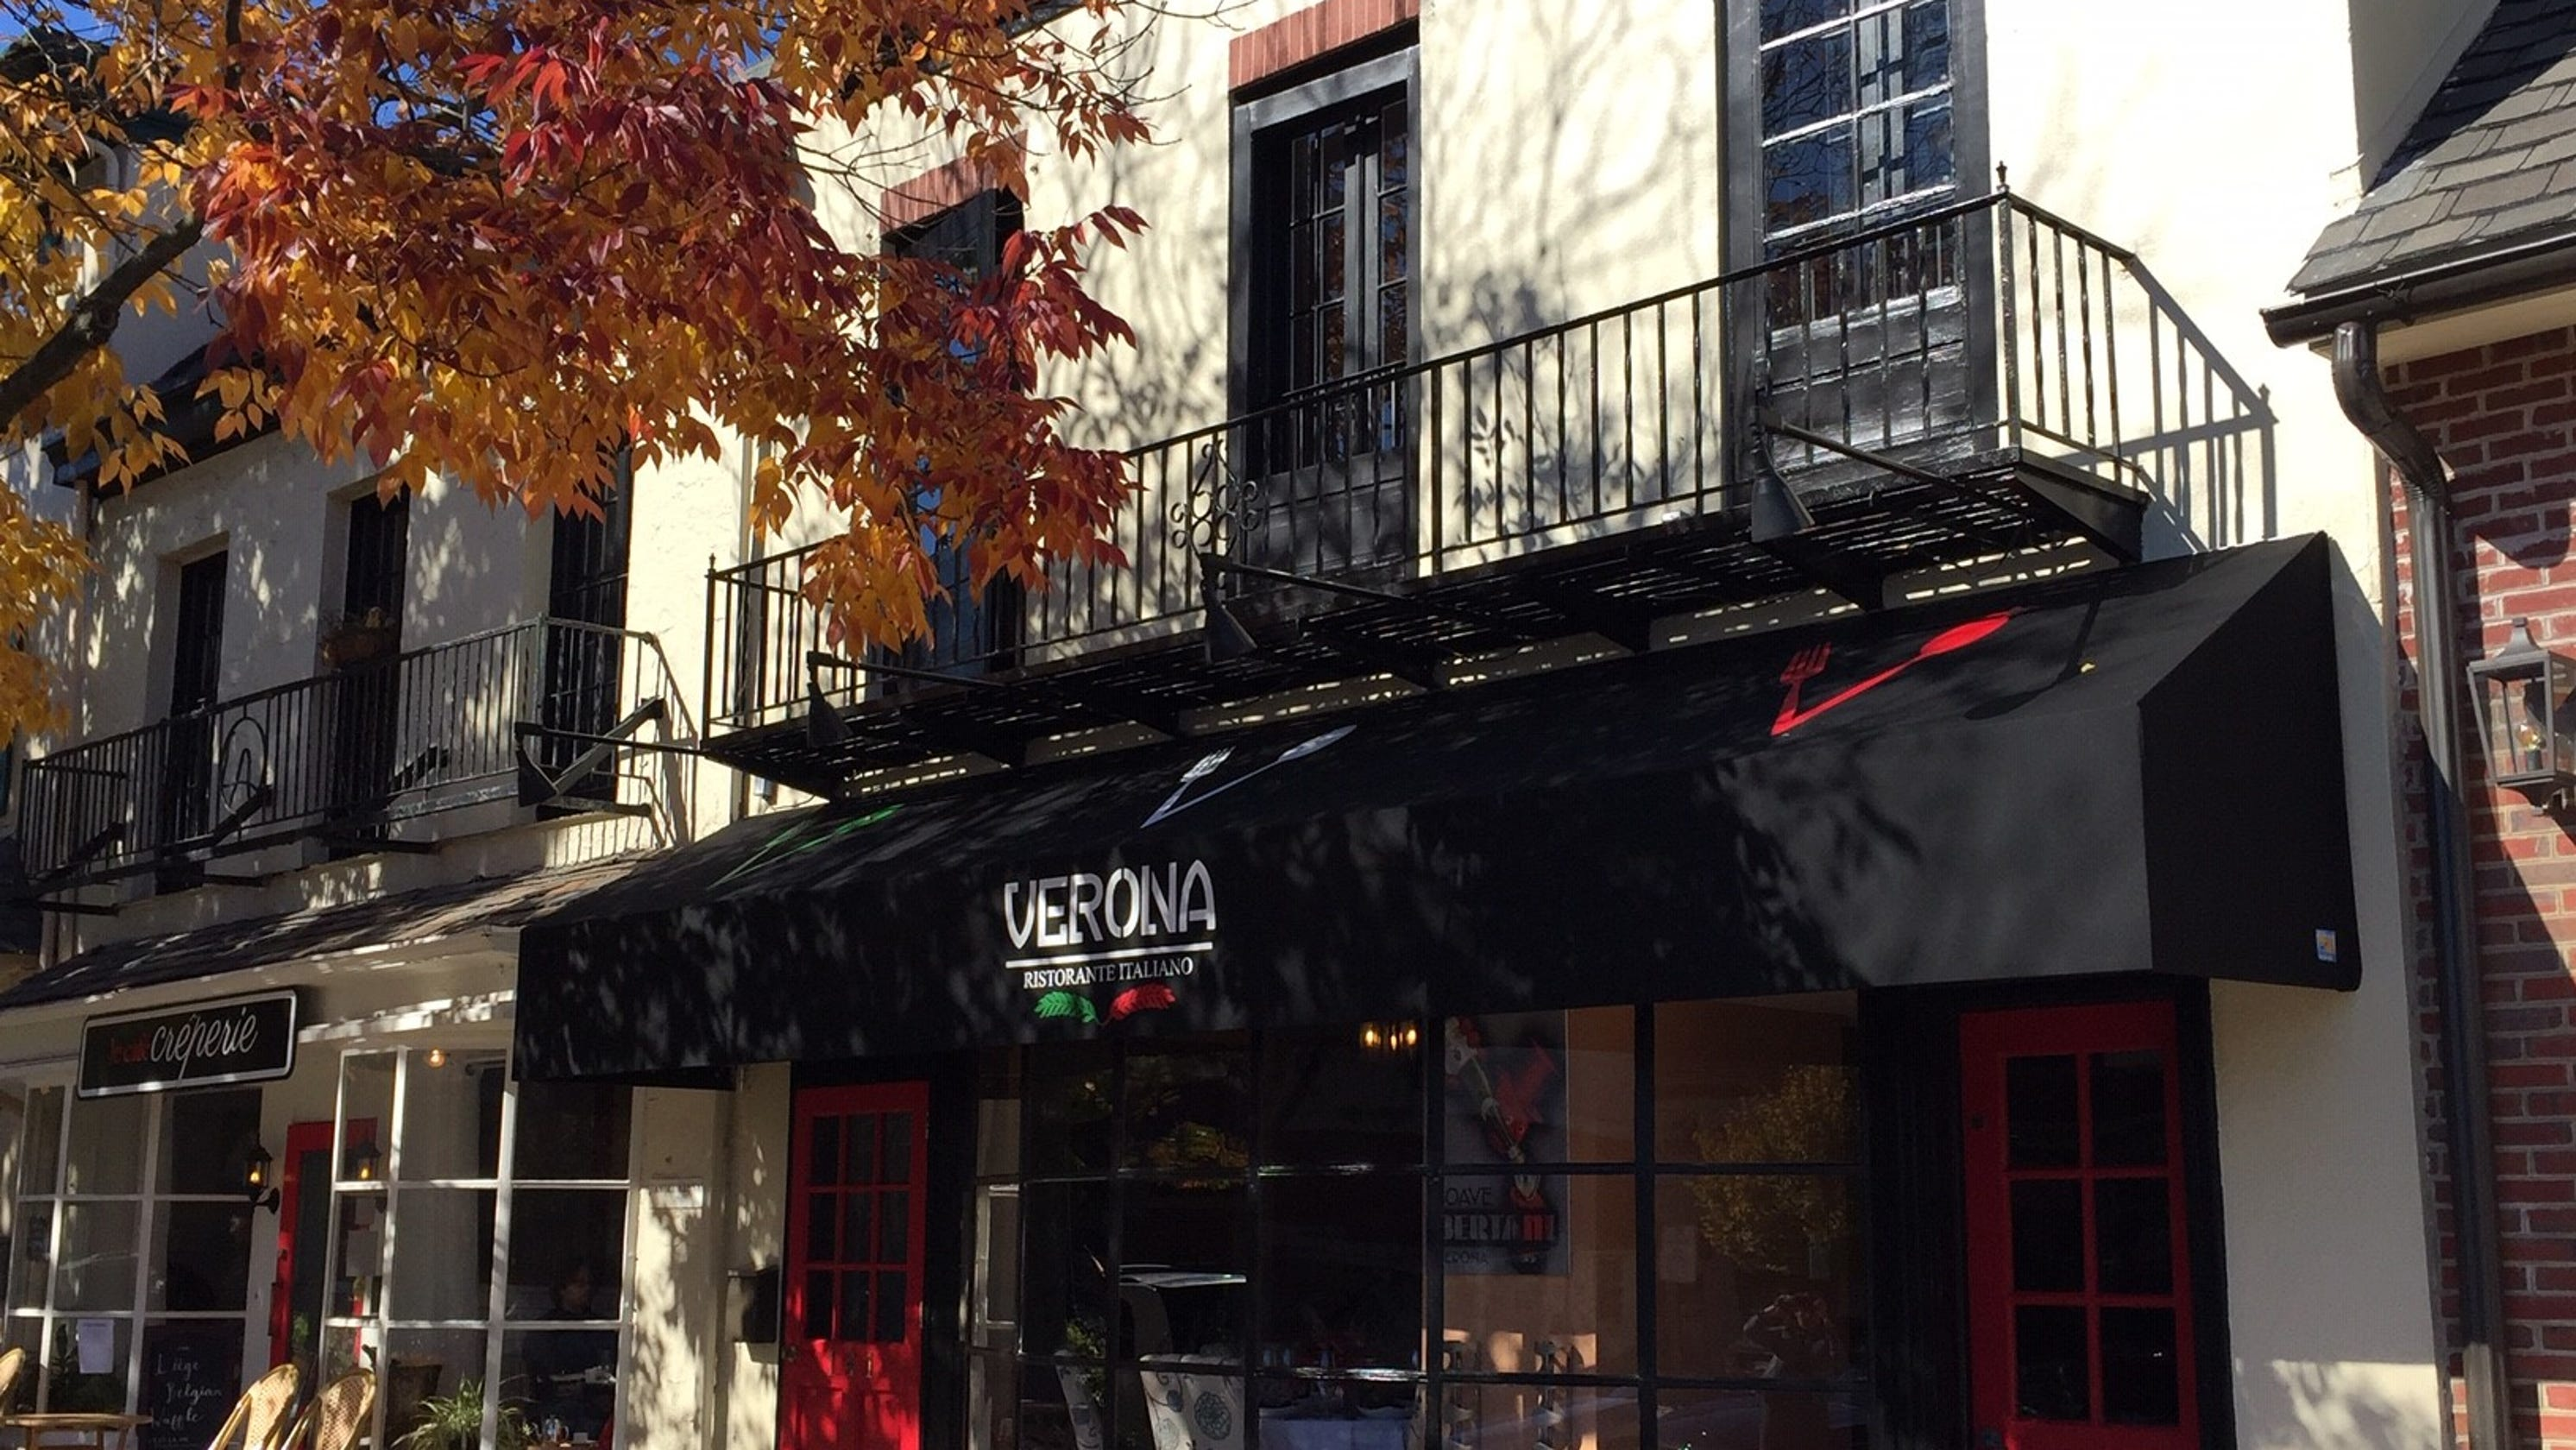 a8742043f4b3 It s all in the family as Verona joins Haddonfield s restaurant row